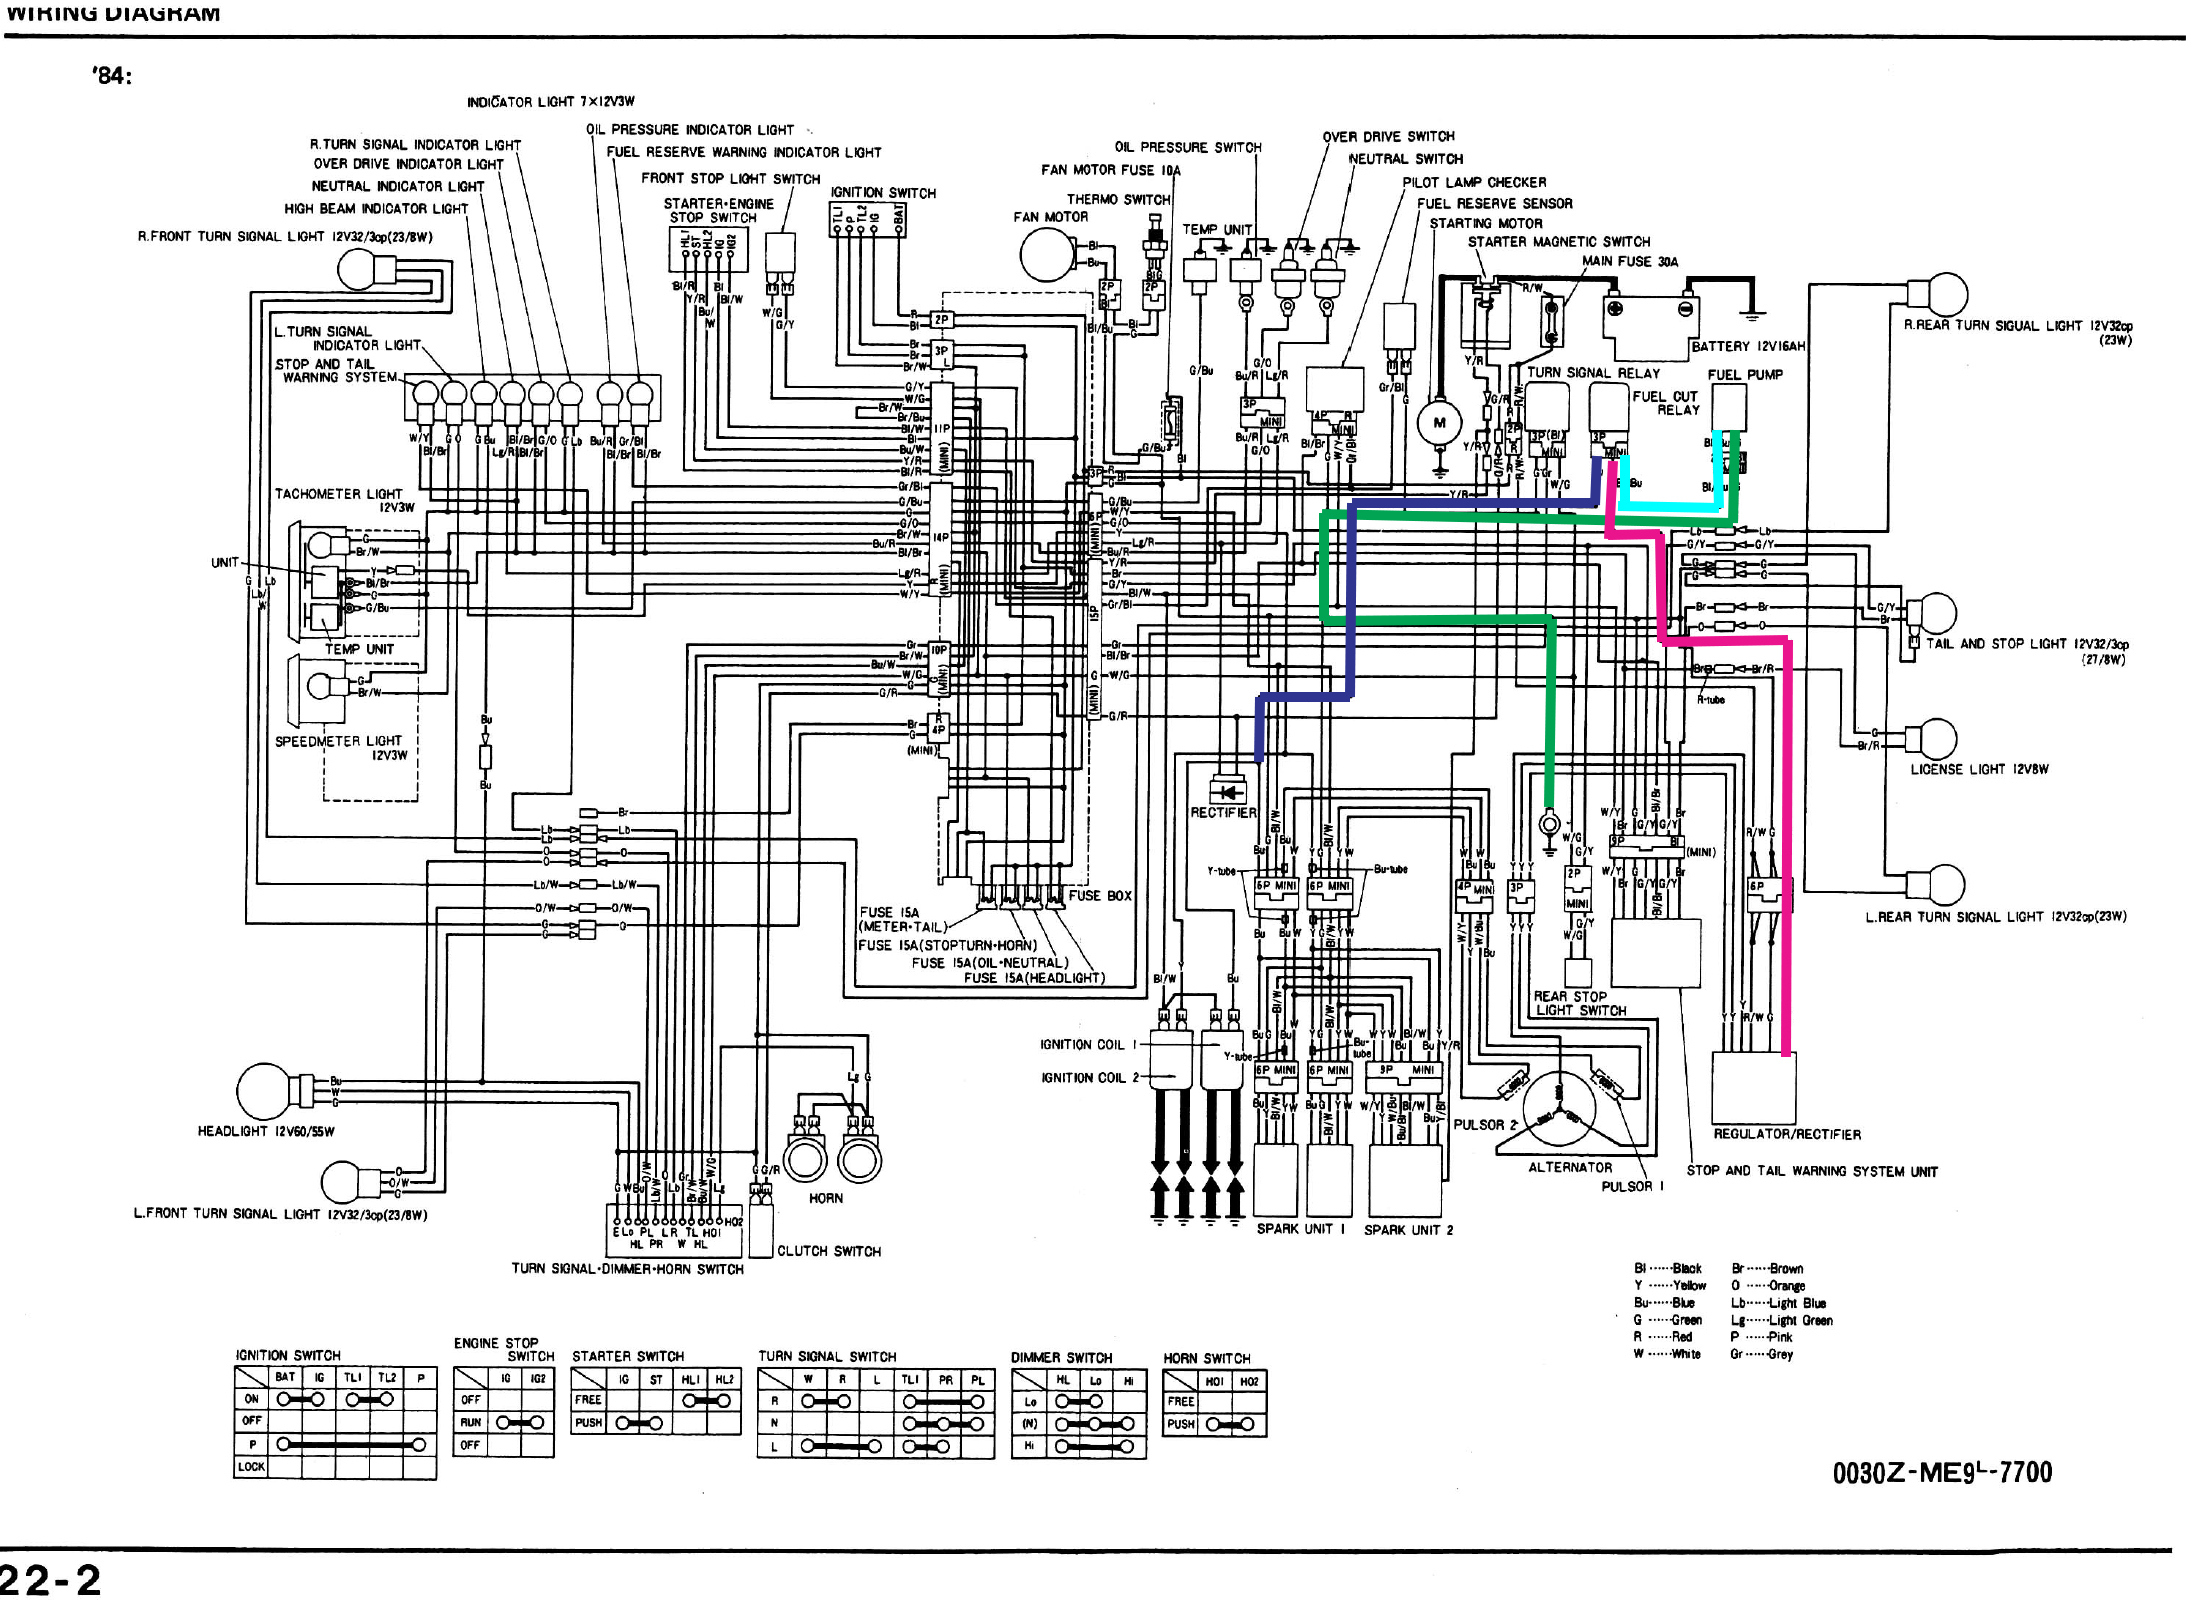 Honda Vt700 Wiring Diagrams Blog Diagram 1985 Goldwing 1986 Shadow Vt700c Electrical Civic Stereo Vt1100c